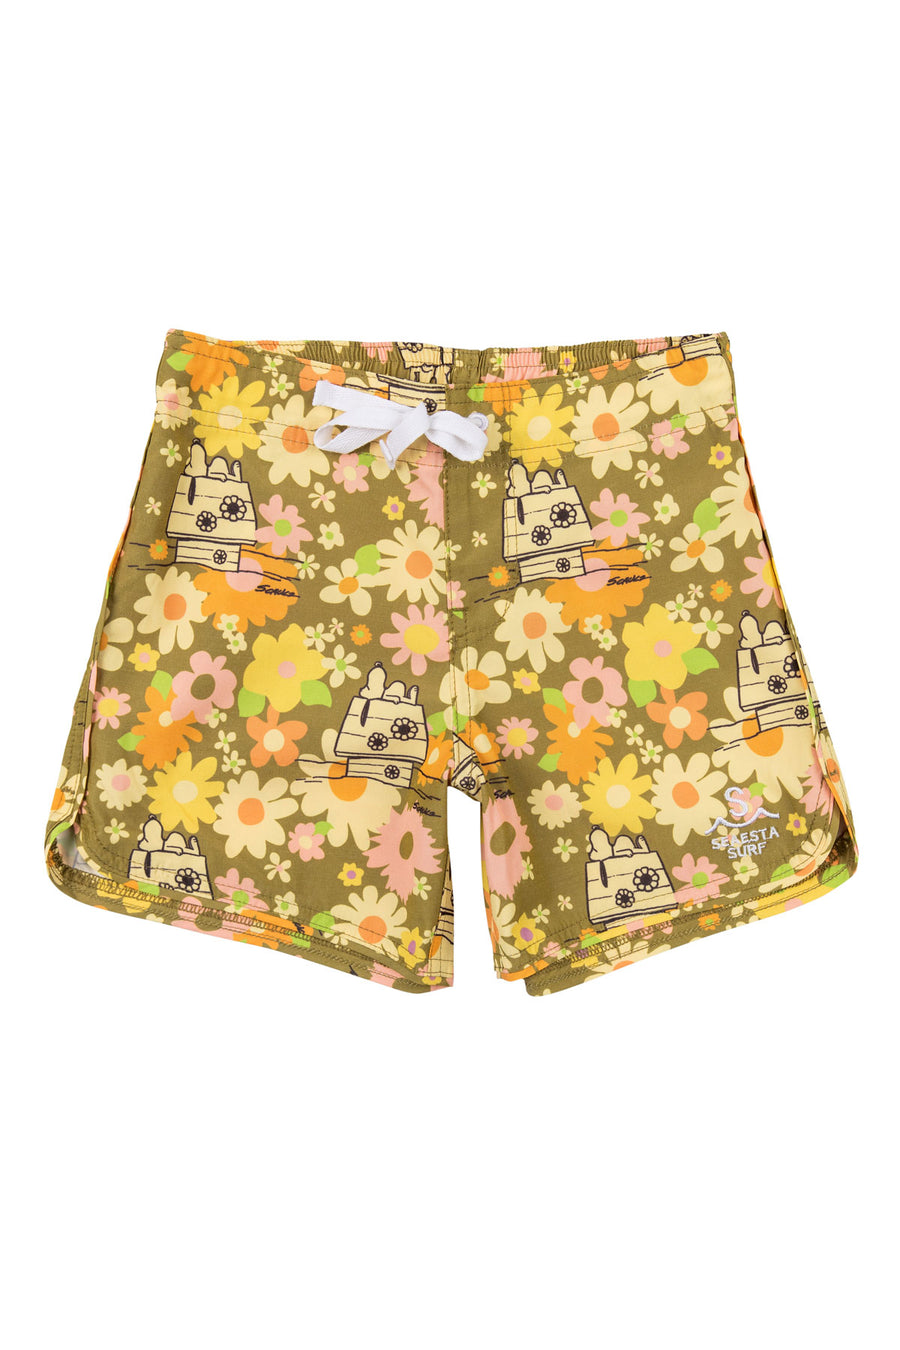 Seaesta Surf x Peanuts® Ditsy Floral Boardshorts